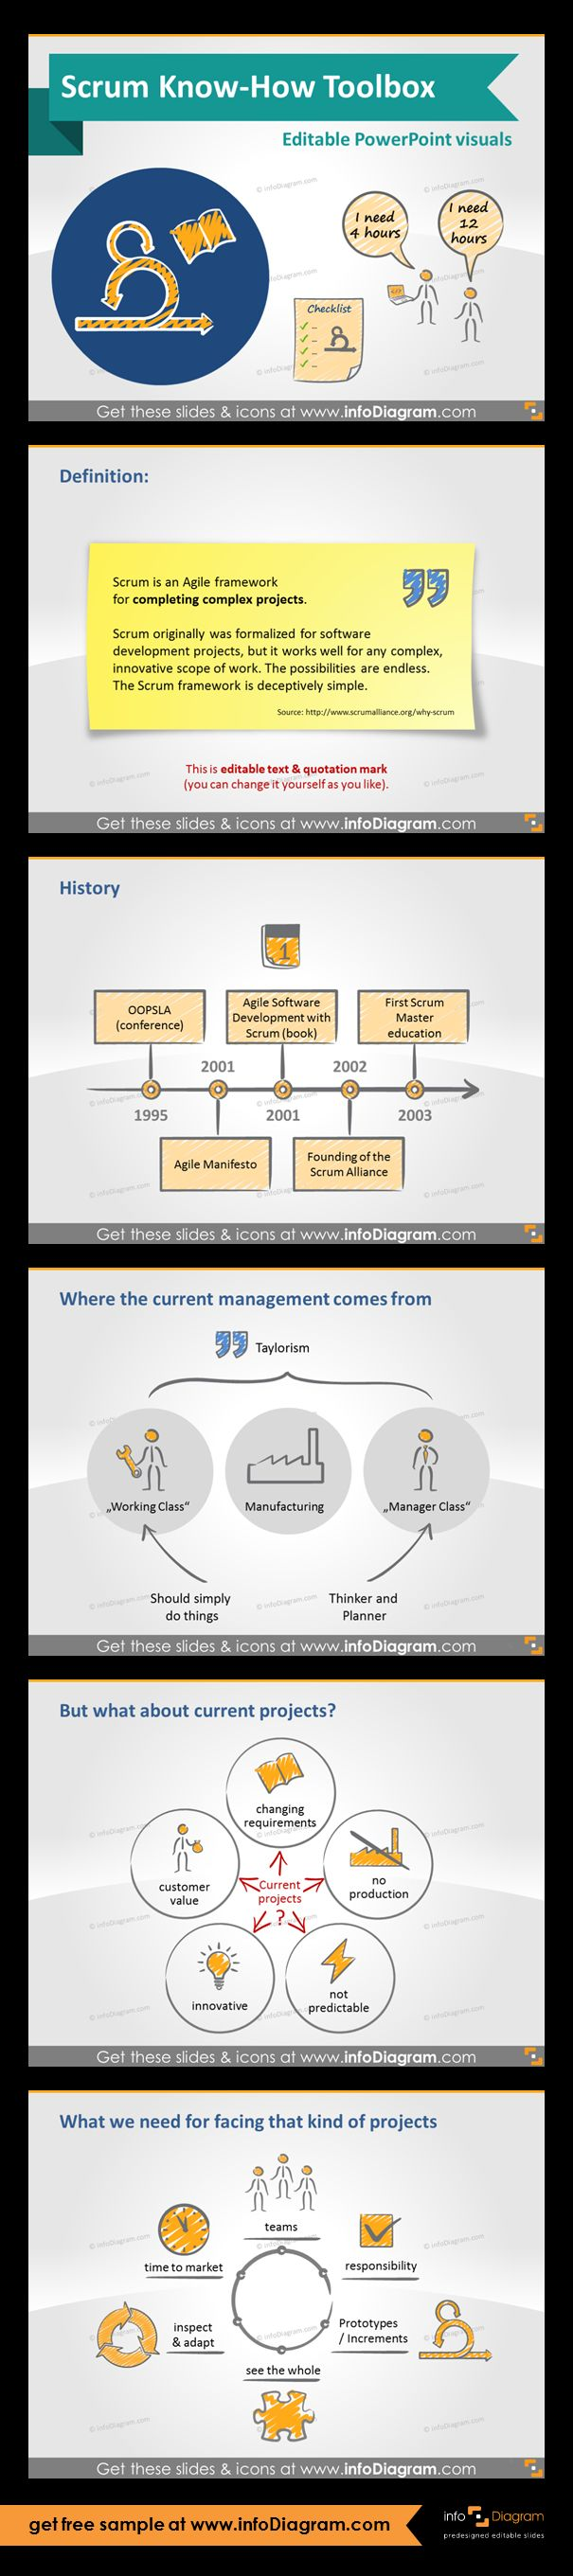 Scrum Know-How Presentation Visuals for Powerpoint. Scrum basics: definition, History of Agile and Scrum, How to start, Right pilot, Building teams. Scrum history on timeline diagram. Scientific management / Taylorism. Current management: Working Class, Manufacturing, Manager Class. Current projects: changing requirements, no production, not predictable, innovate, customer value. What we need for facing project? Essential elements icons: teams, responsibility, Prototypes / Increments.